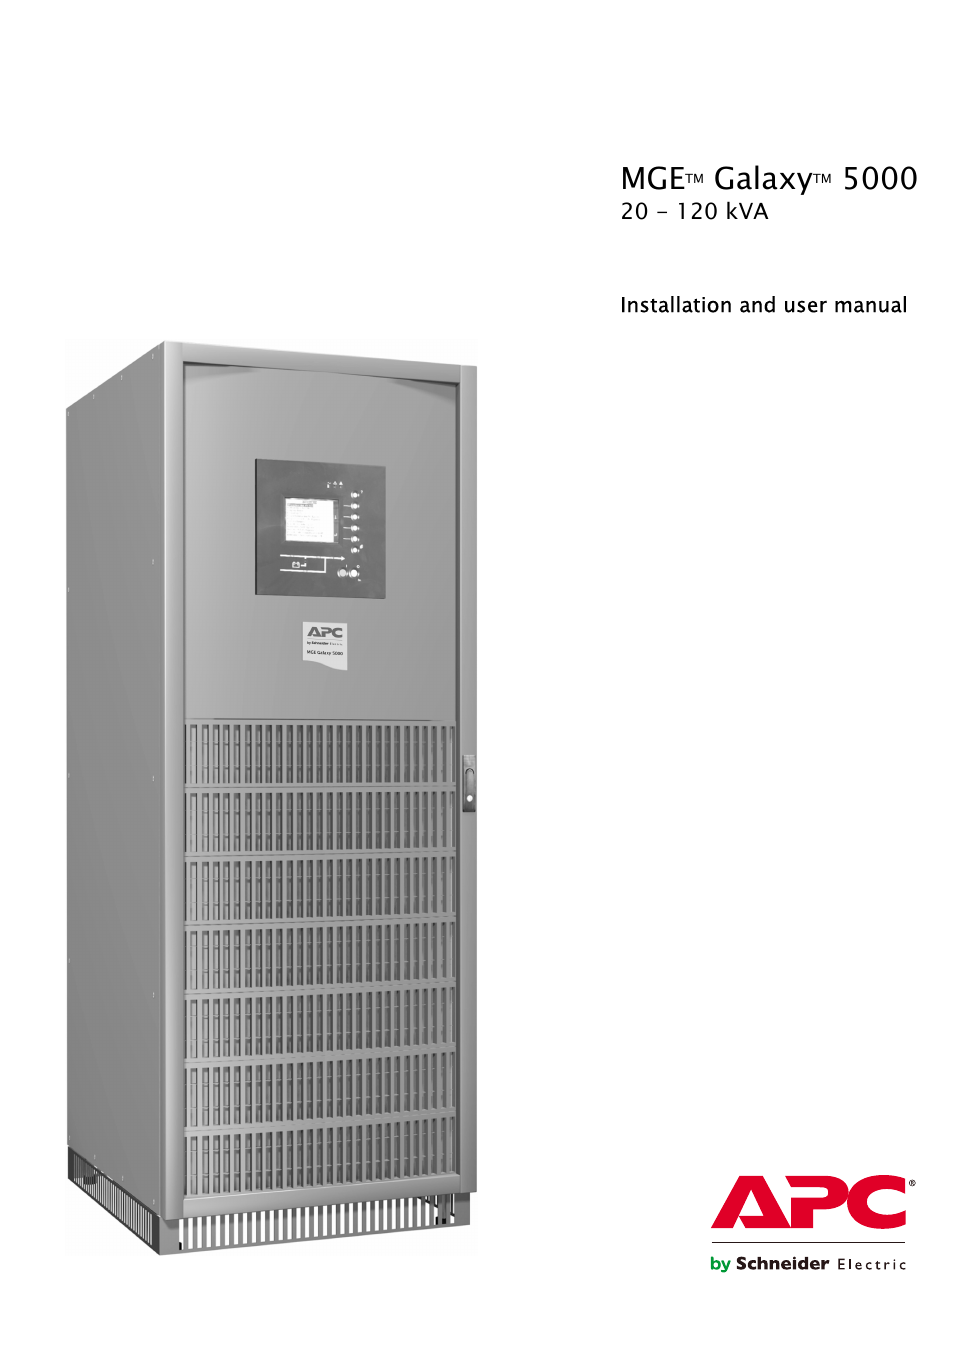 APC GALAXY 5000 User Manual | 68 pages